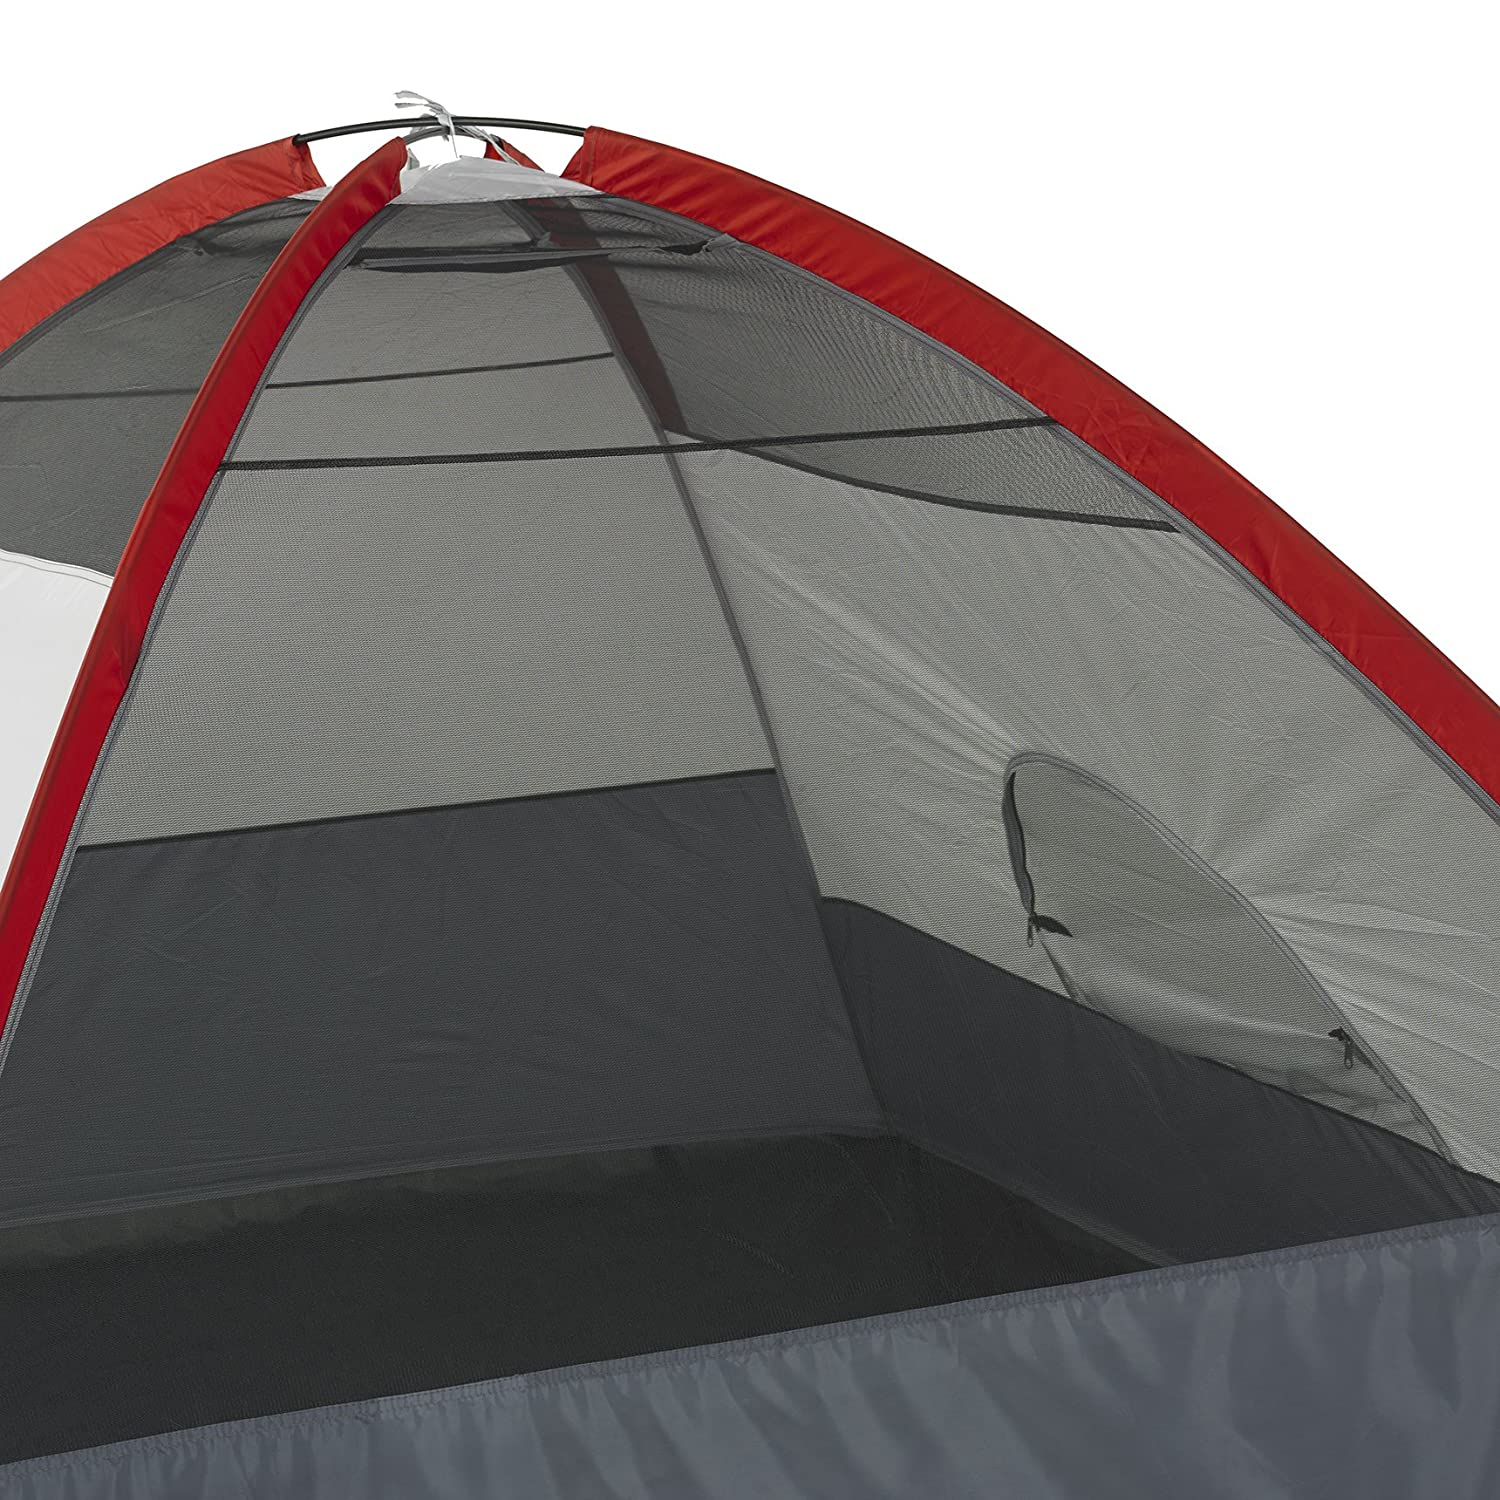 Amazon.com  Mountain Trails South Bend Tent - 4 Person  Backpacking Tents  Sports u0026 Outdoors  sc 1 st  Amazon.com : mountain trail tent - memphite.com